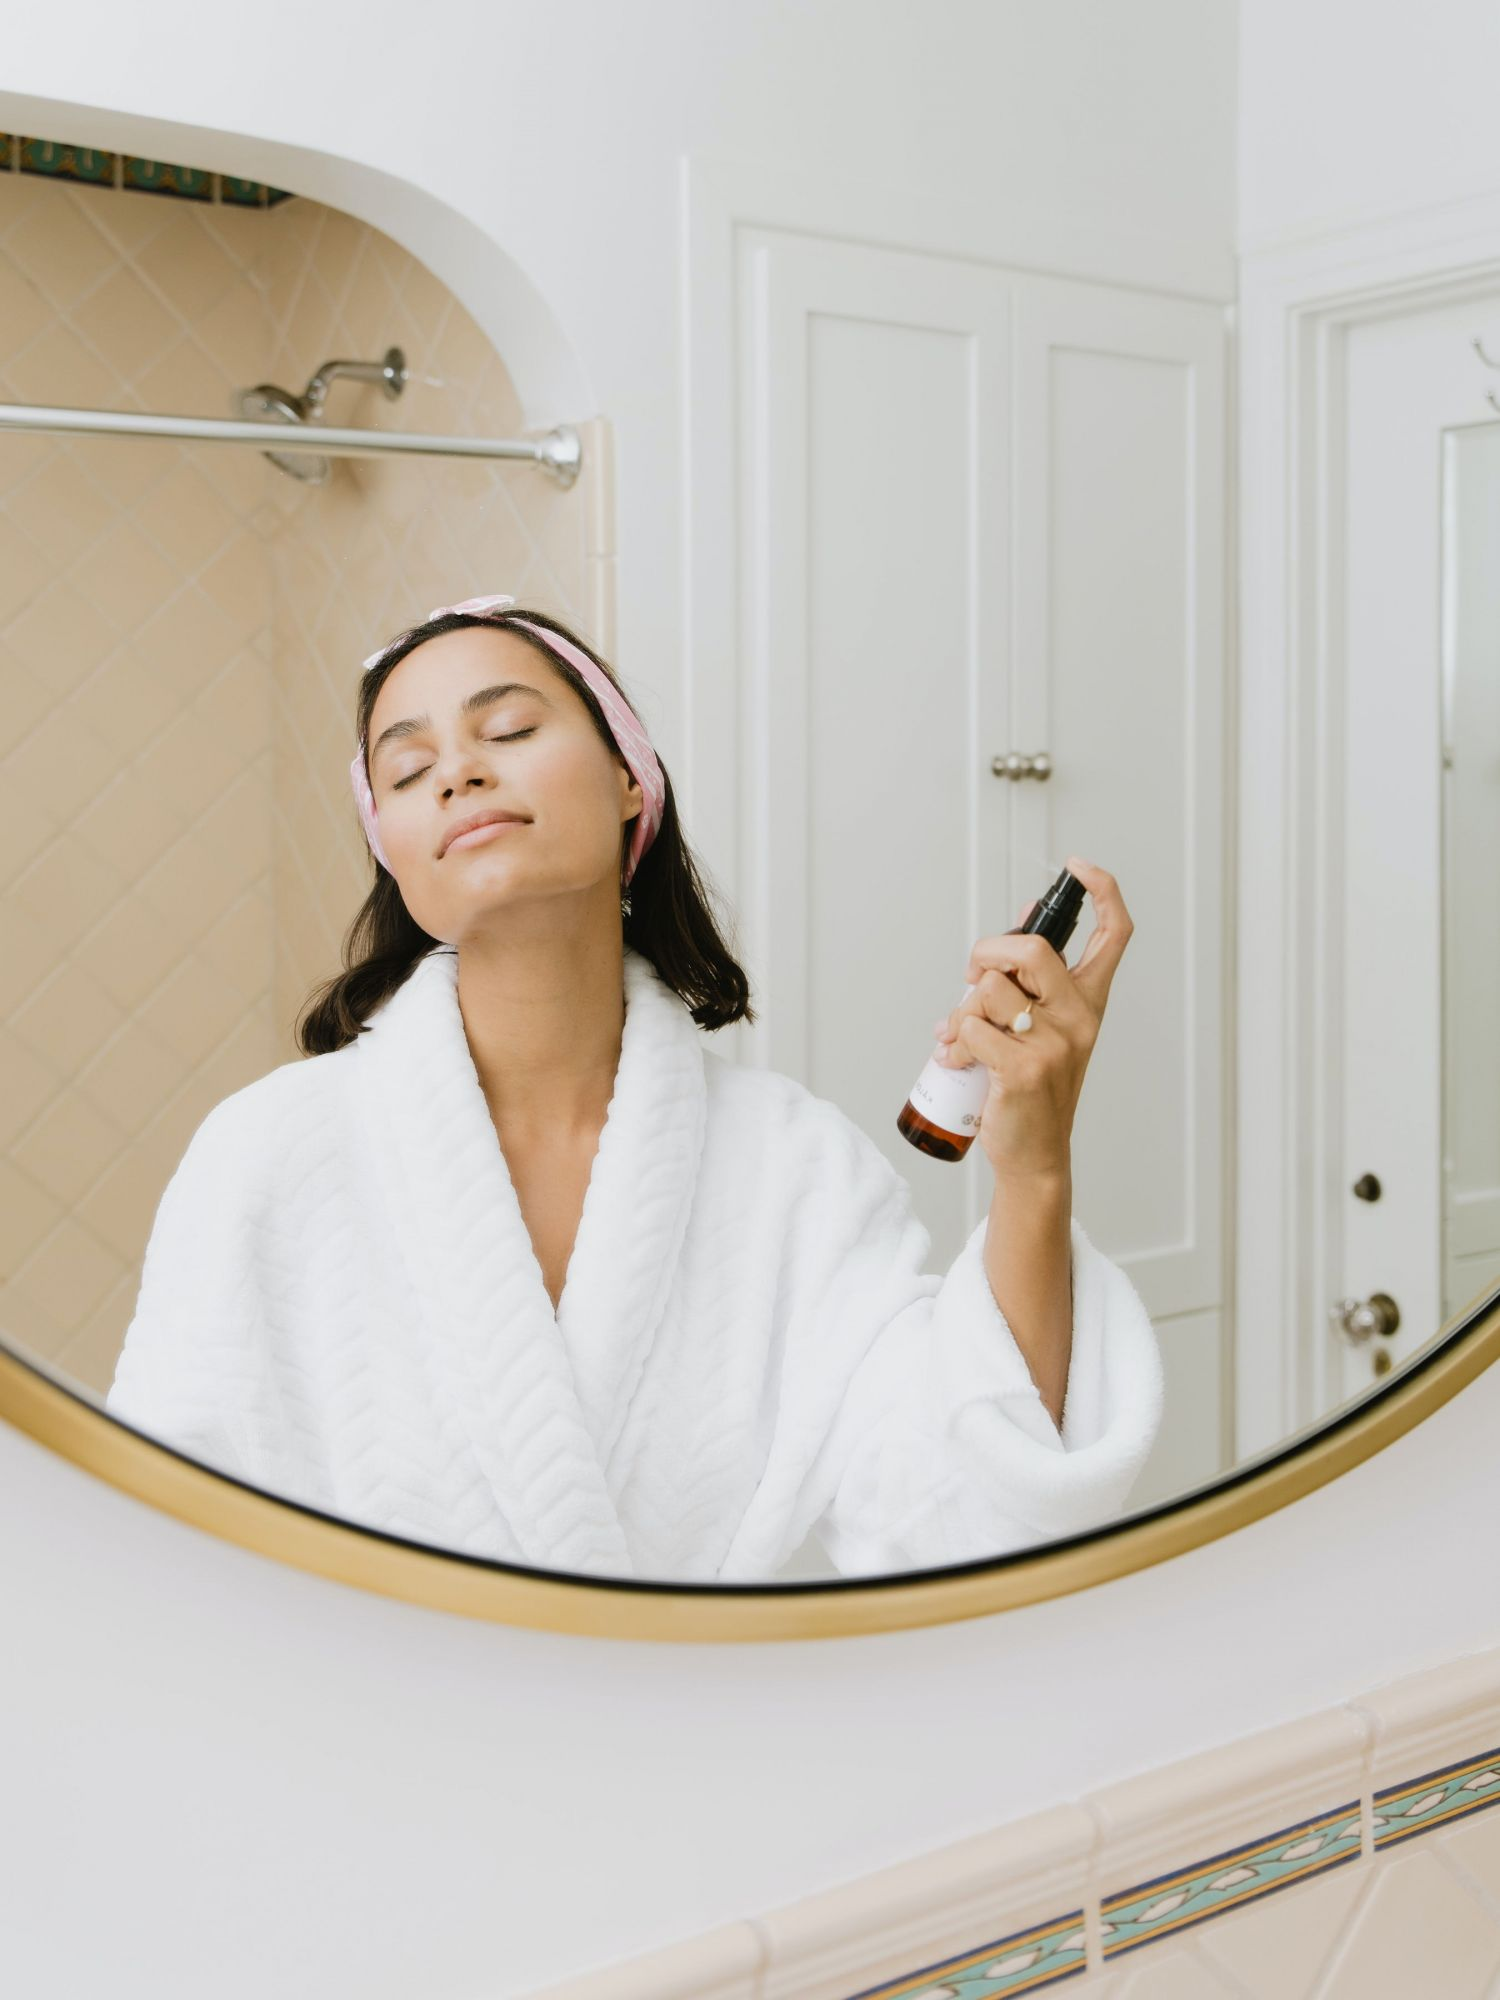 Singapore Beauty Startup Sequential Skin Uses Science to Help Identify the Best Skincare For You